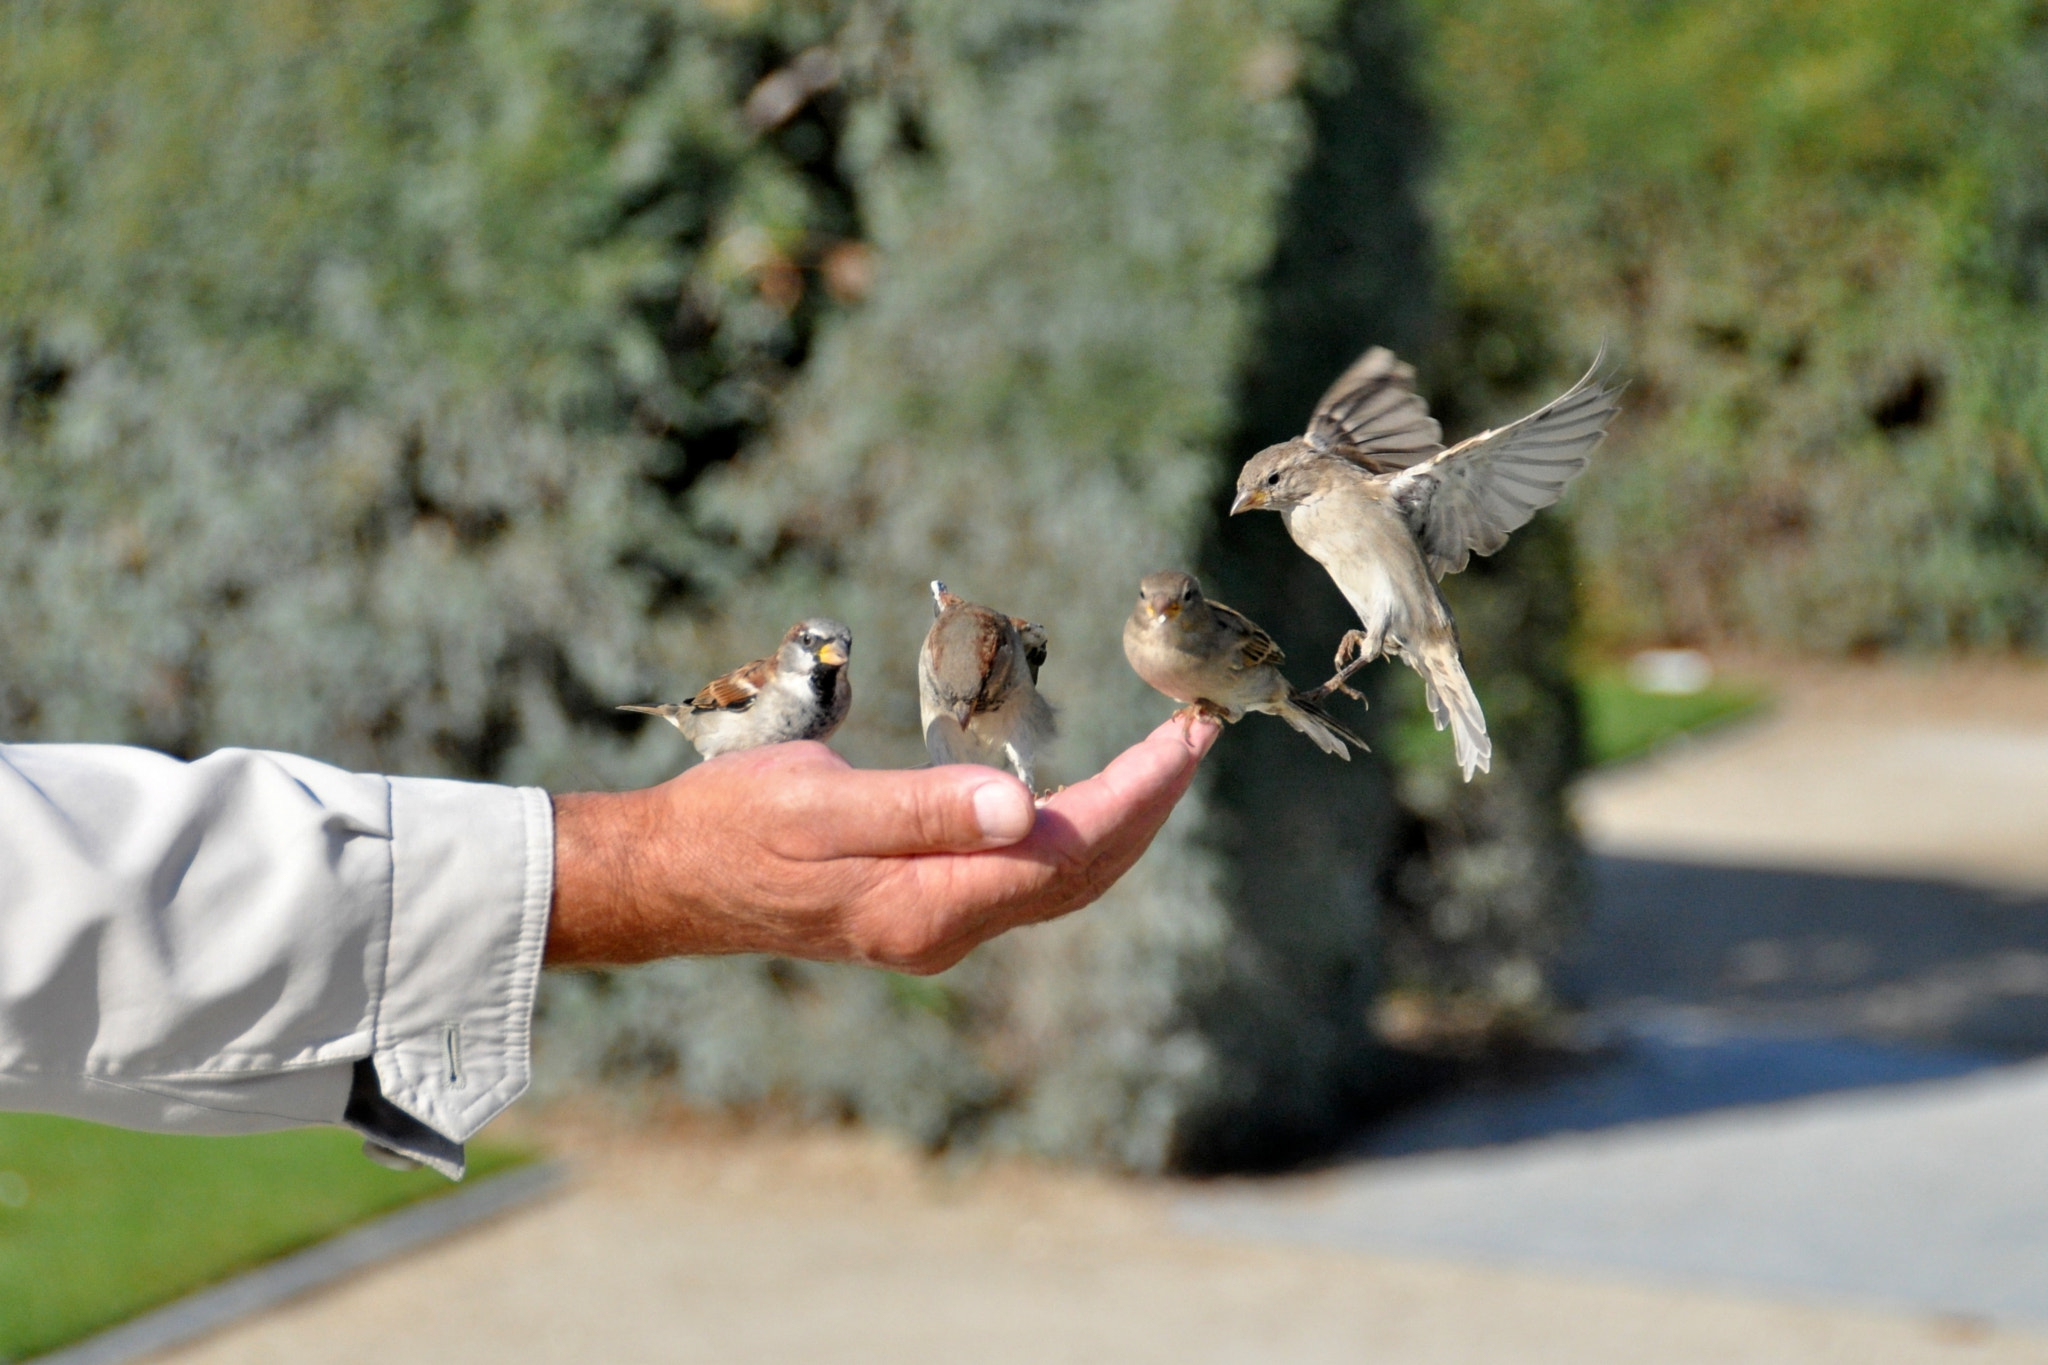 Photograph Birds in the hand by Daniel Esmaili on 500px